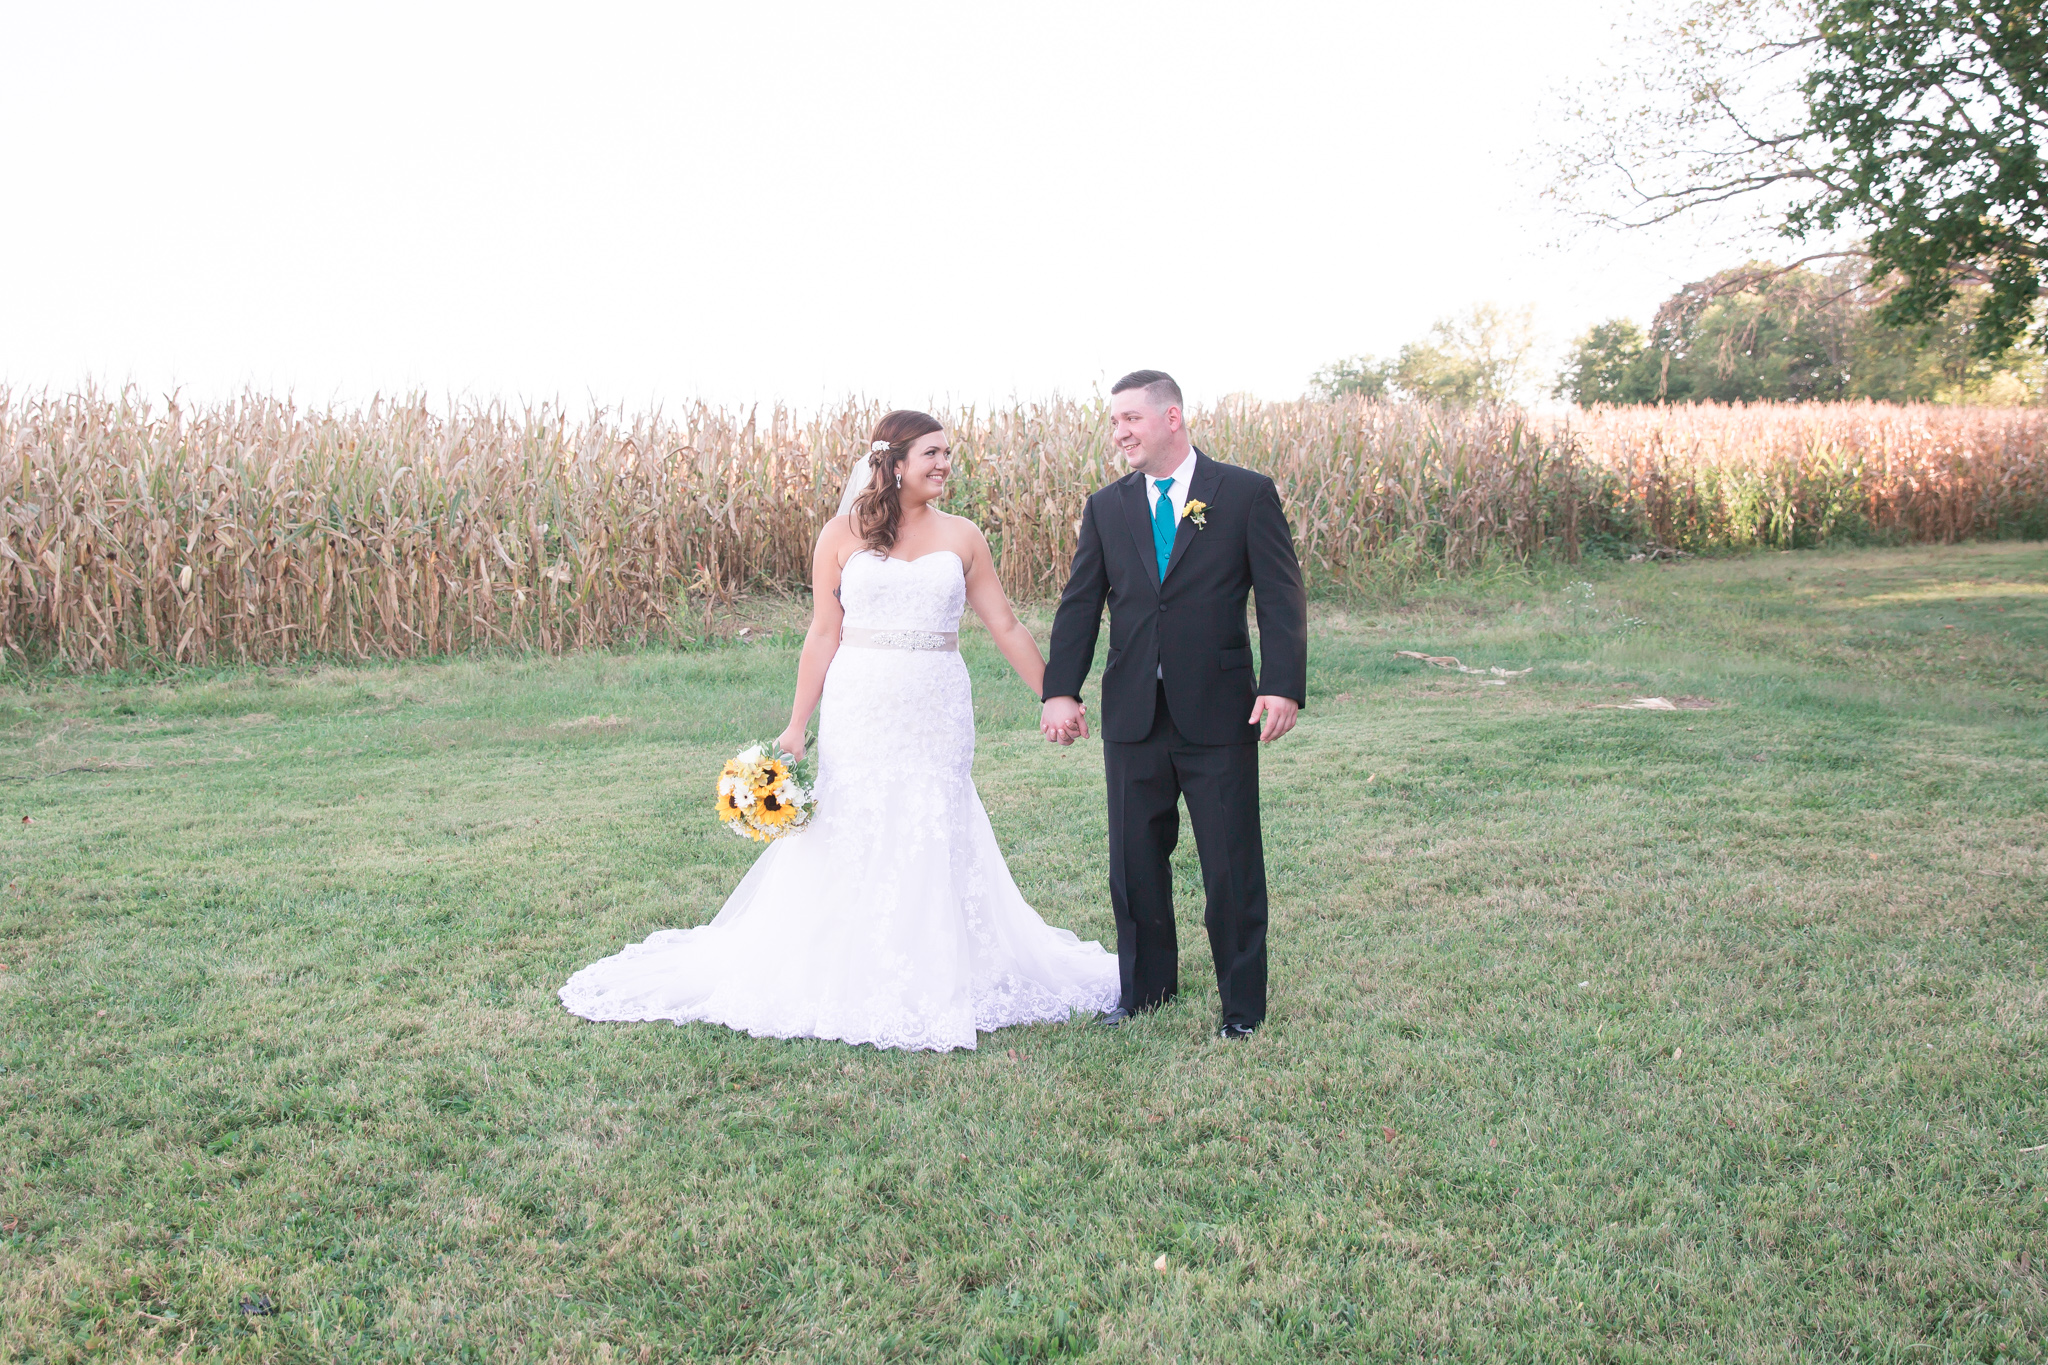 Oh photographing by a cornfield. I powered through having two bugs in my eyes while photographing Helen and Dan. This pic is super cute and despite the bugginess, I loved the location!